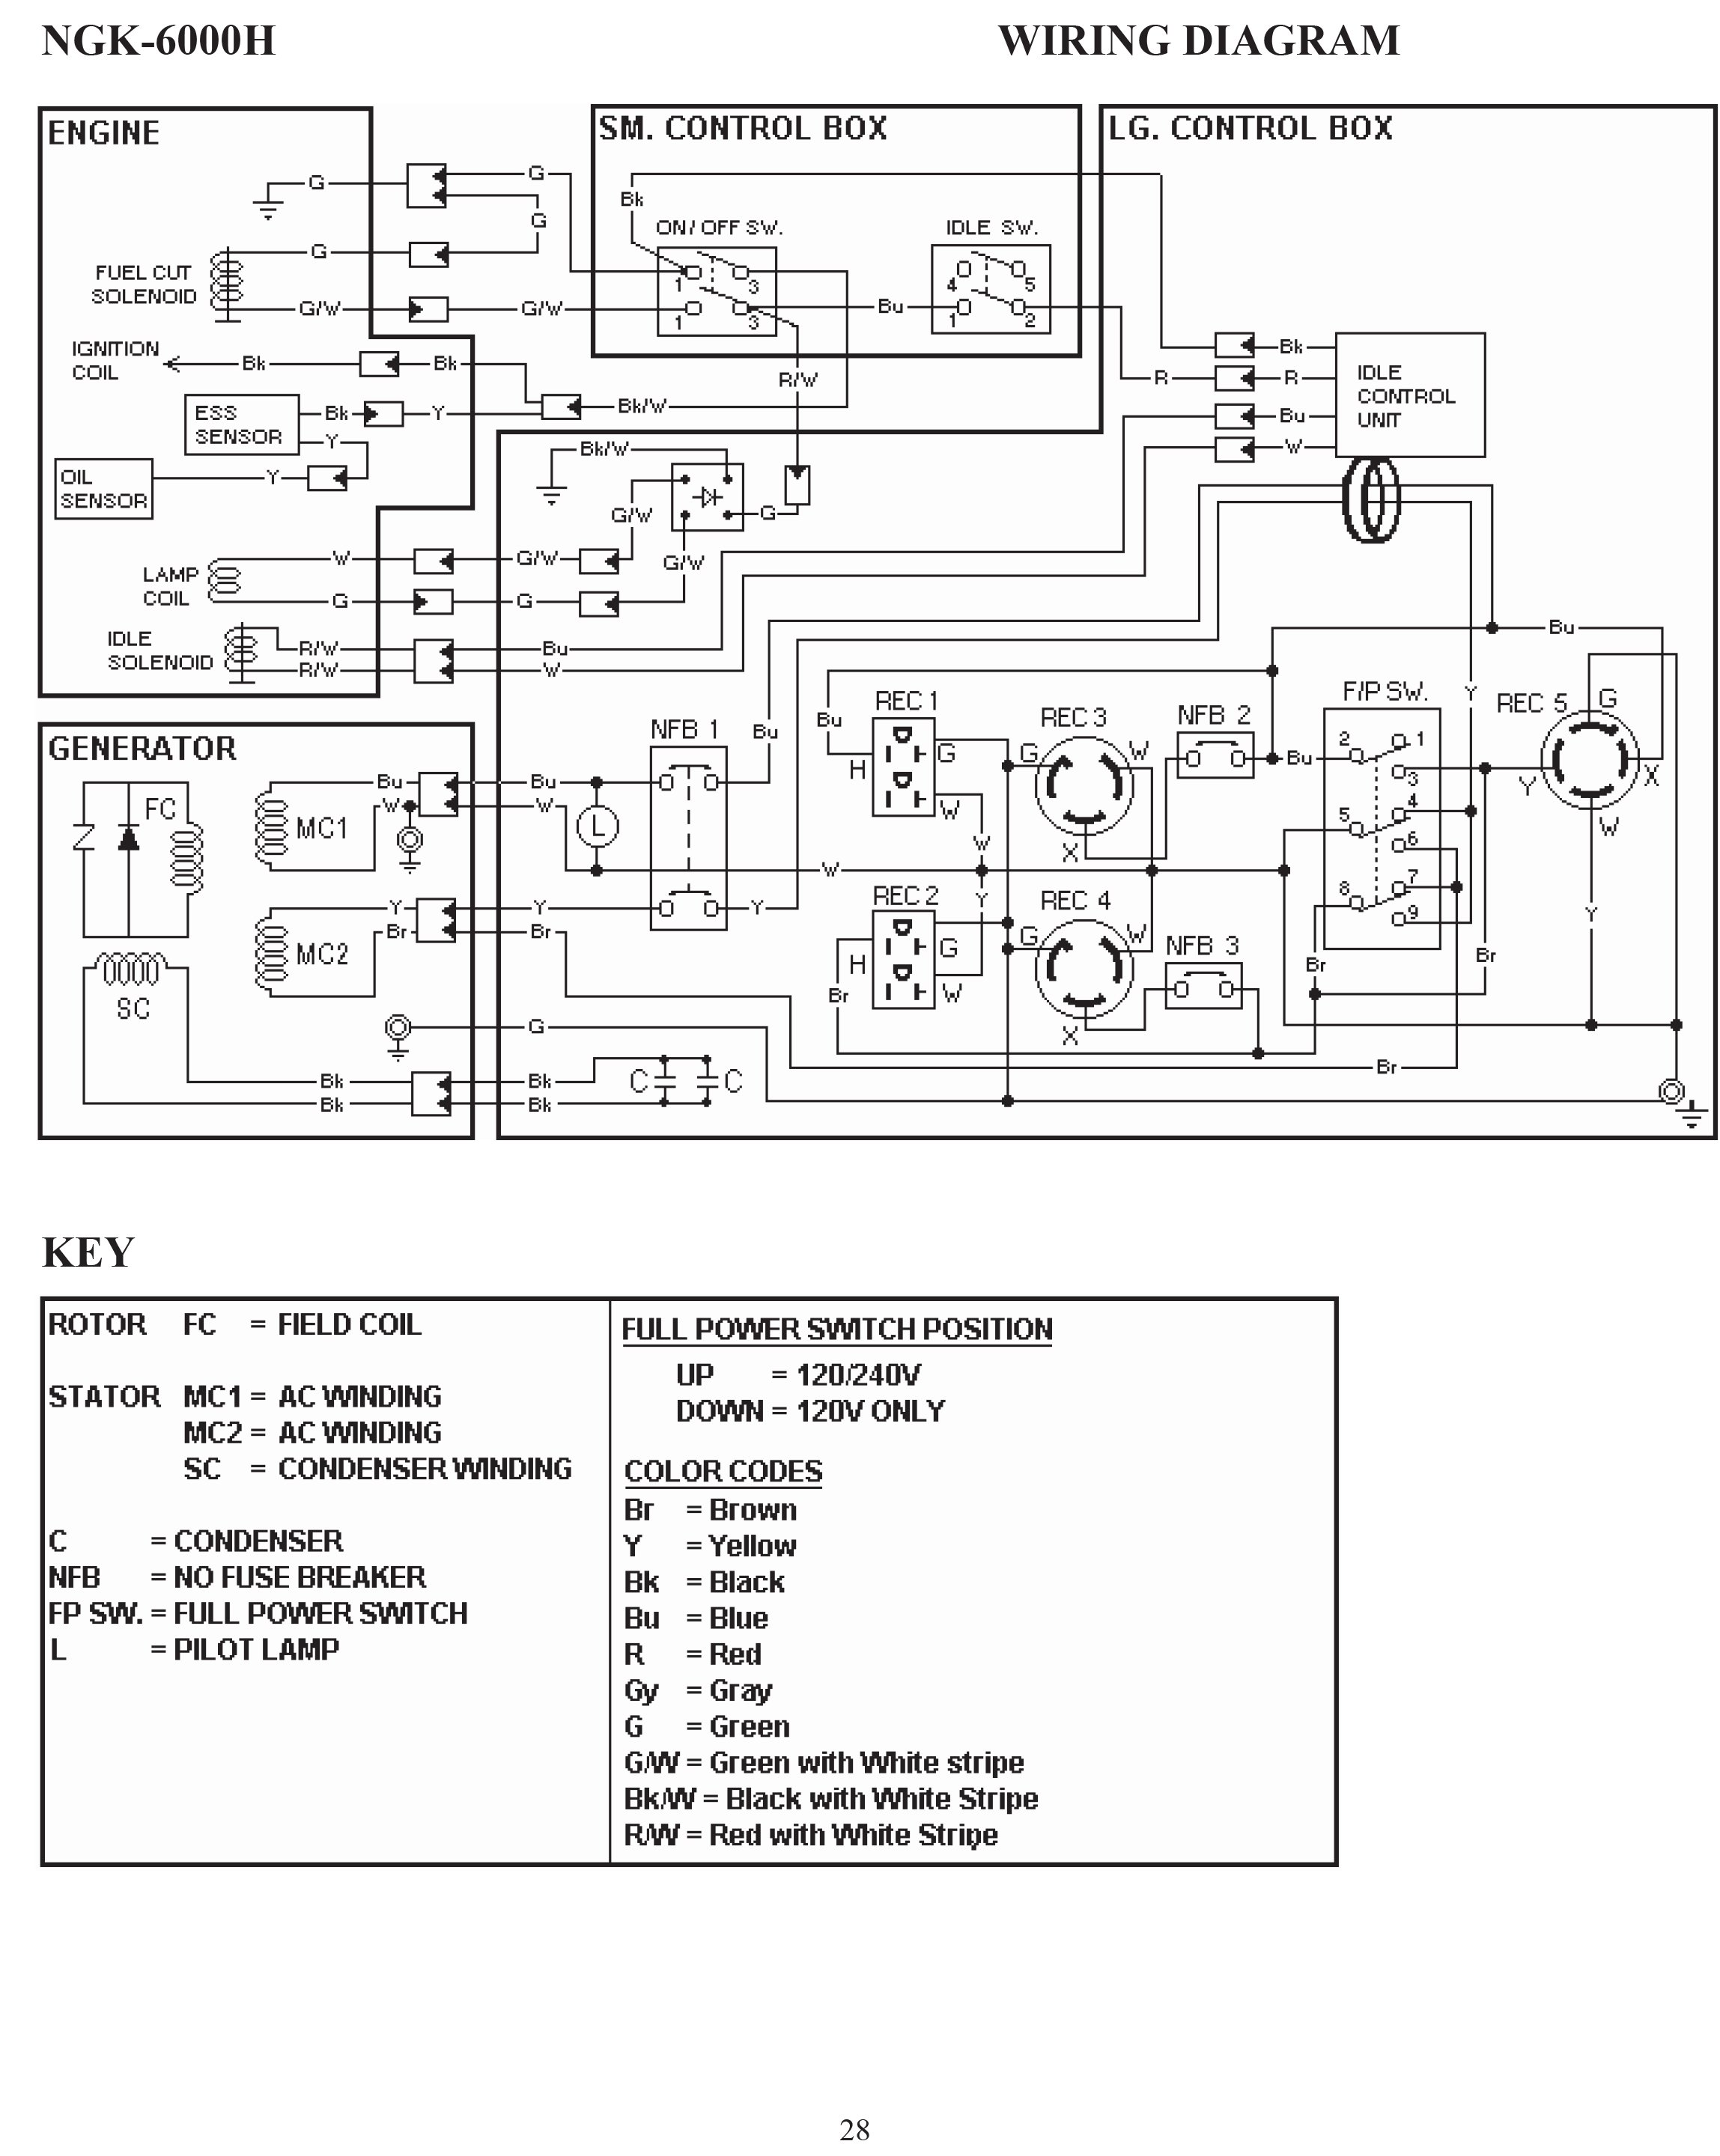 Motorhome Generac Generator Wiring Diagram 42 Schematic 2013 11 06 014756 Ngk Honda Engine Hank I See Your Reply To The